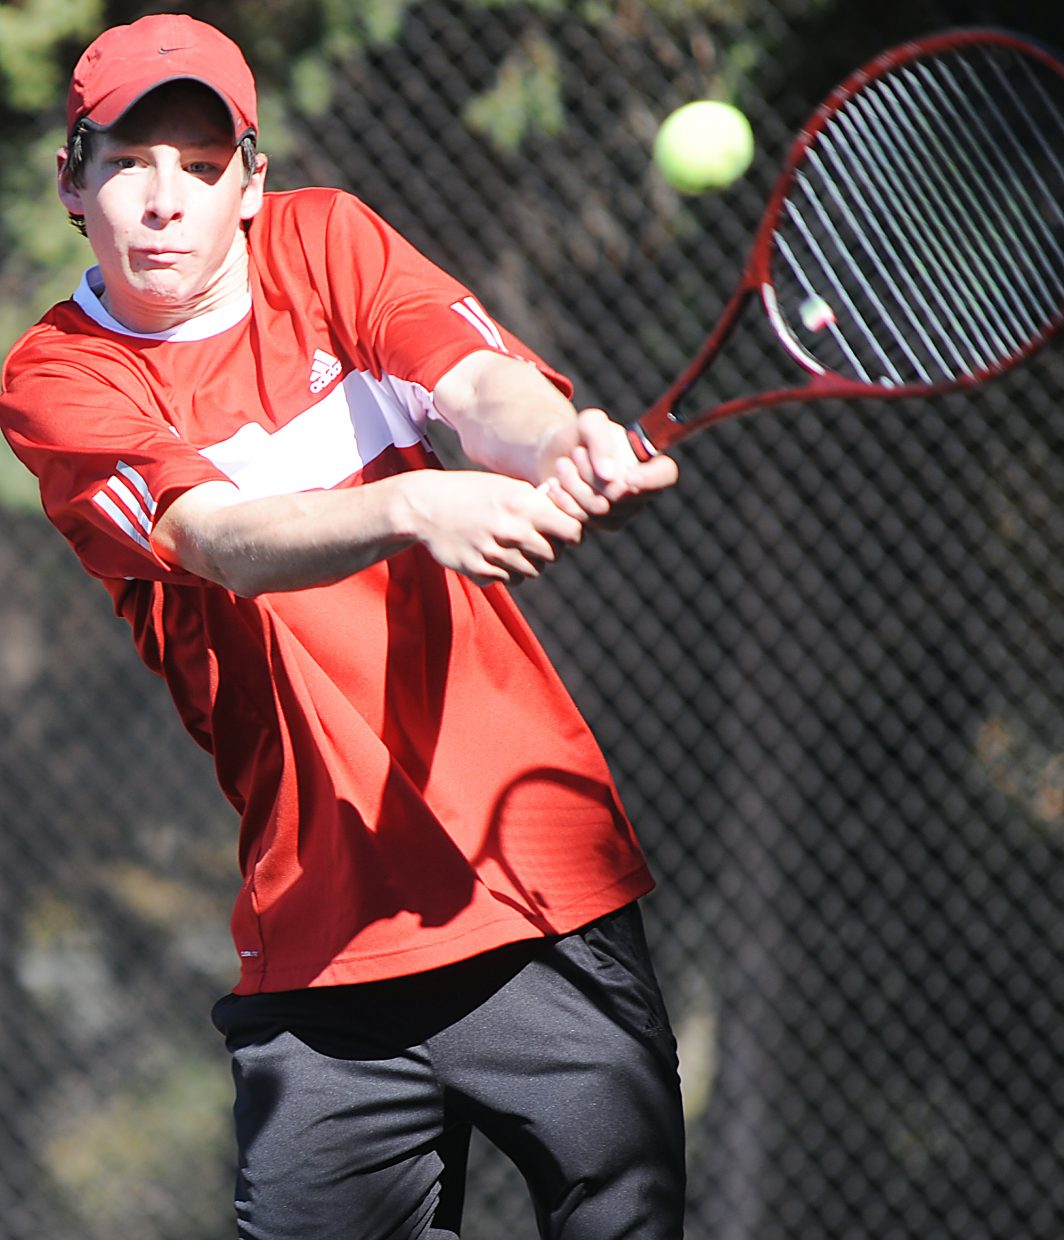 Jamey Swiggart swings for a ball Thursday at the state tennis tournament in Pueblo.